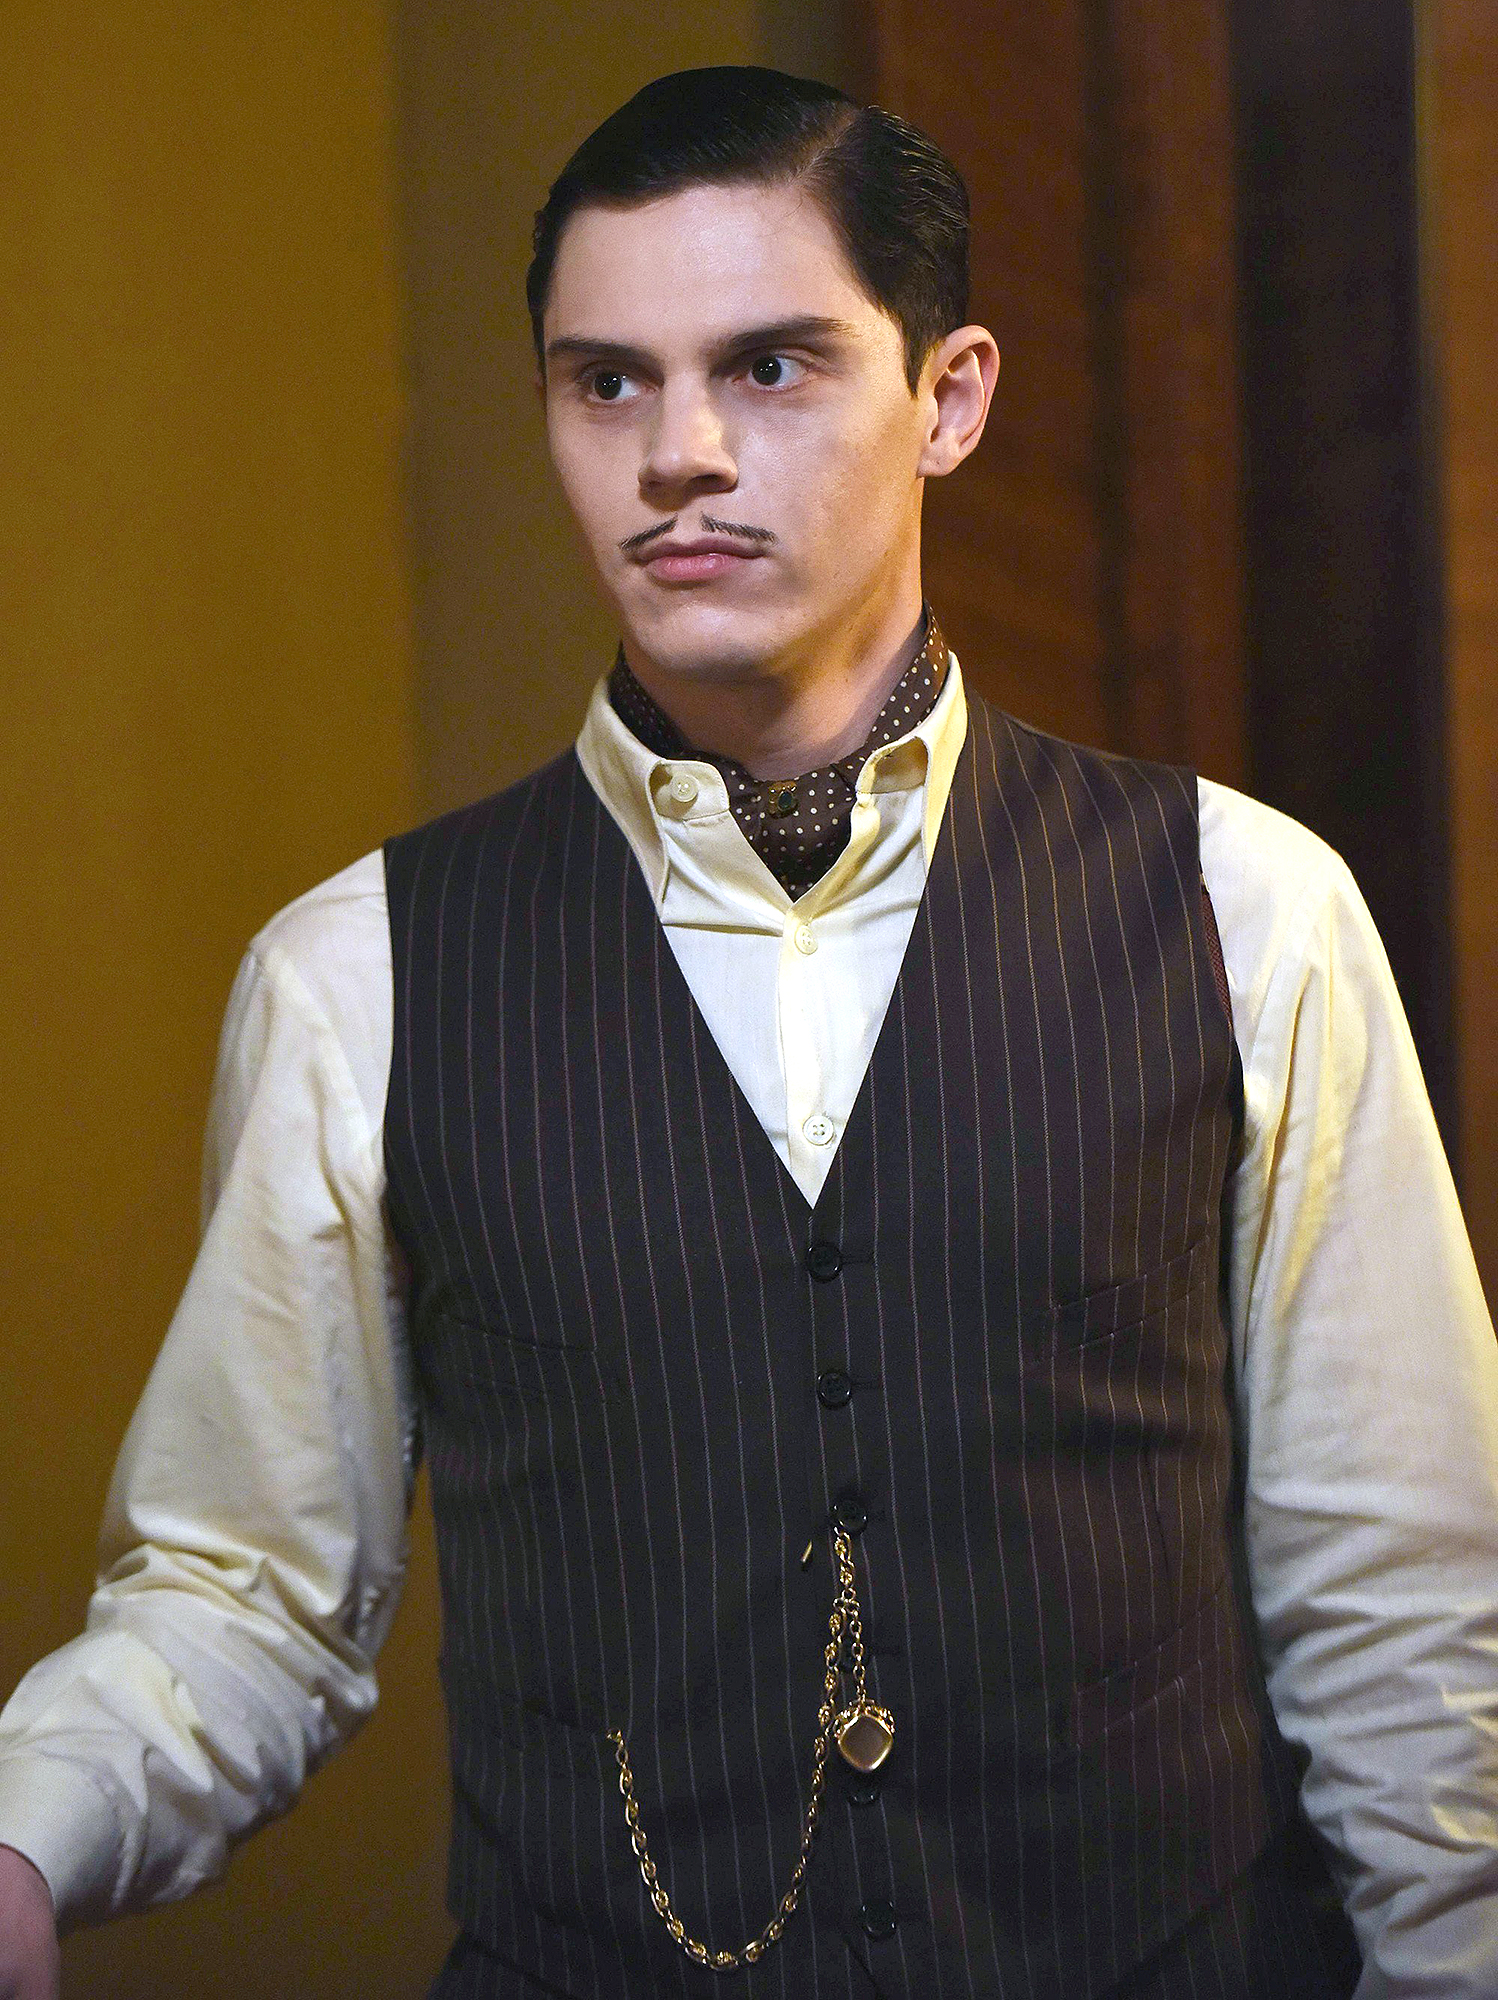 AMERICAN HORROR STORY: HOTEL, Evan Peters in 'She Wants Revenge' (Season 5, Episode 9, aired